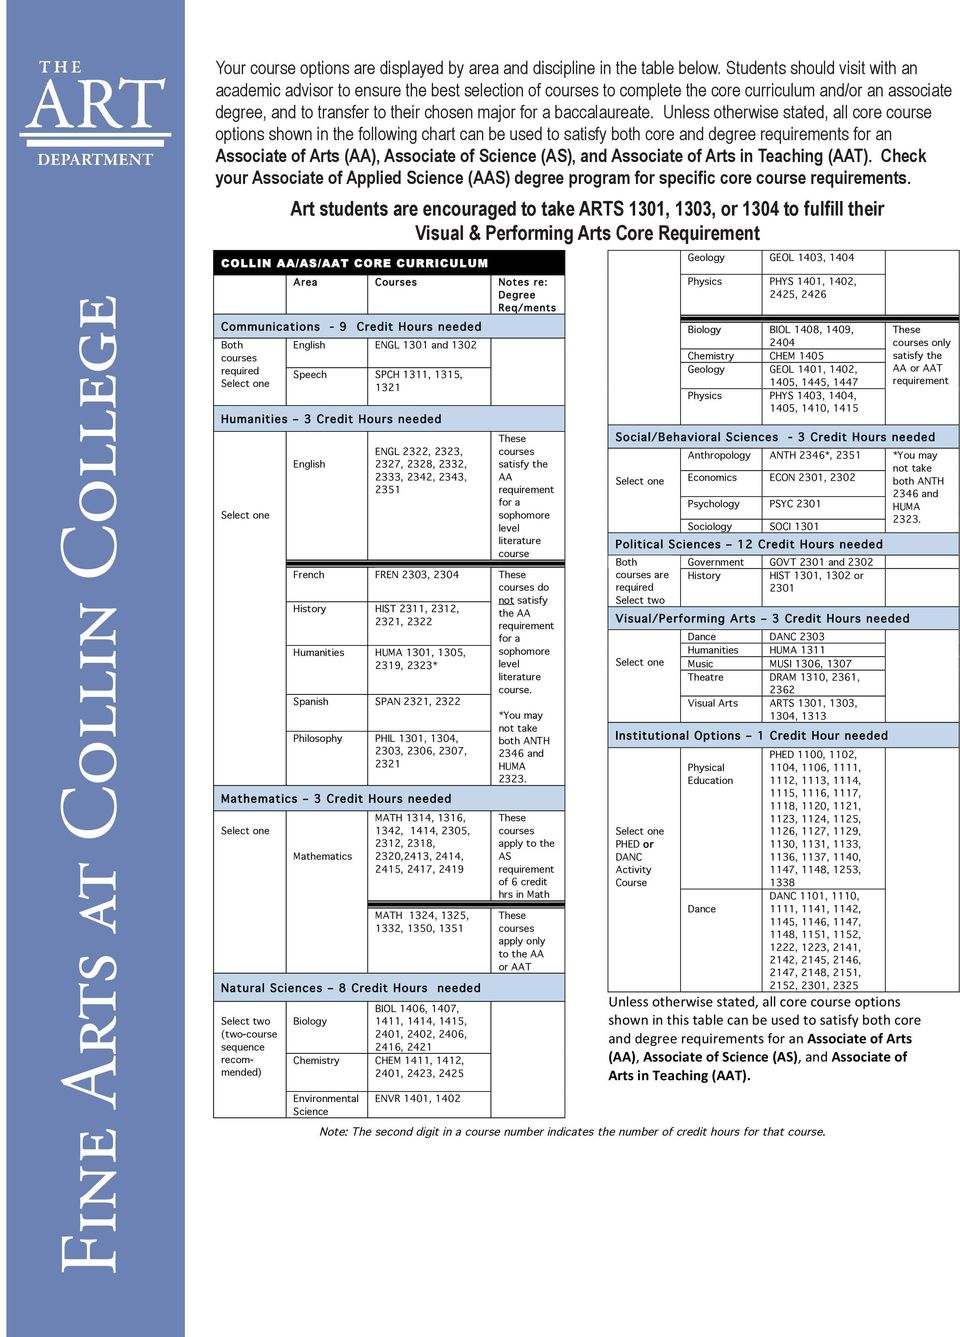 Unless otherwise stated, all core course options shown in the following chart can be used to satisfy both core and degree s n Associate of Arts (AA), Associate of Science (AS), and Associate of Arts